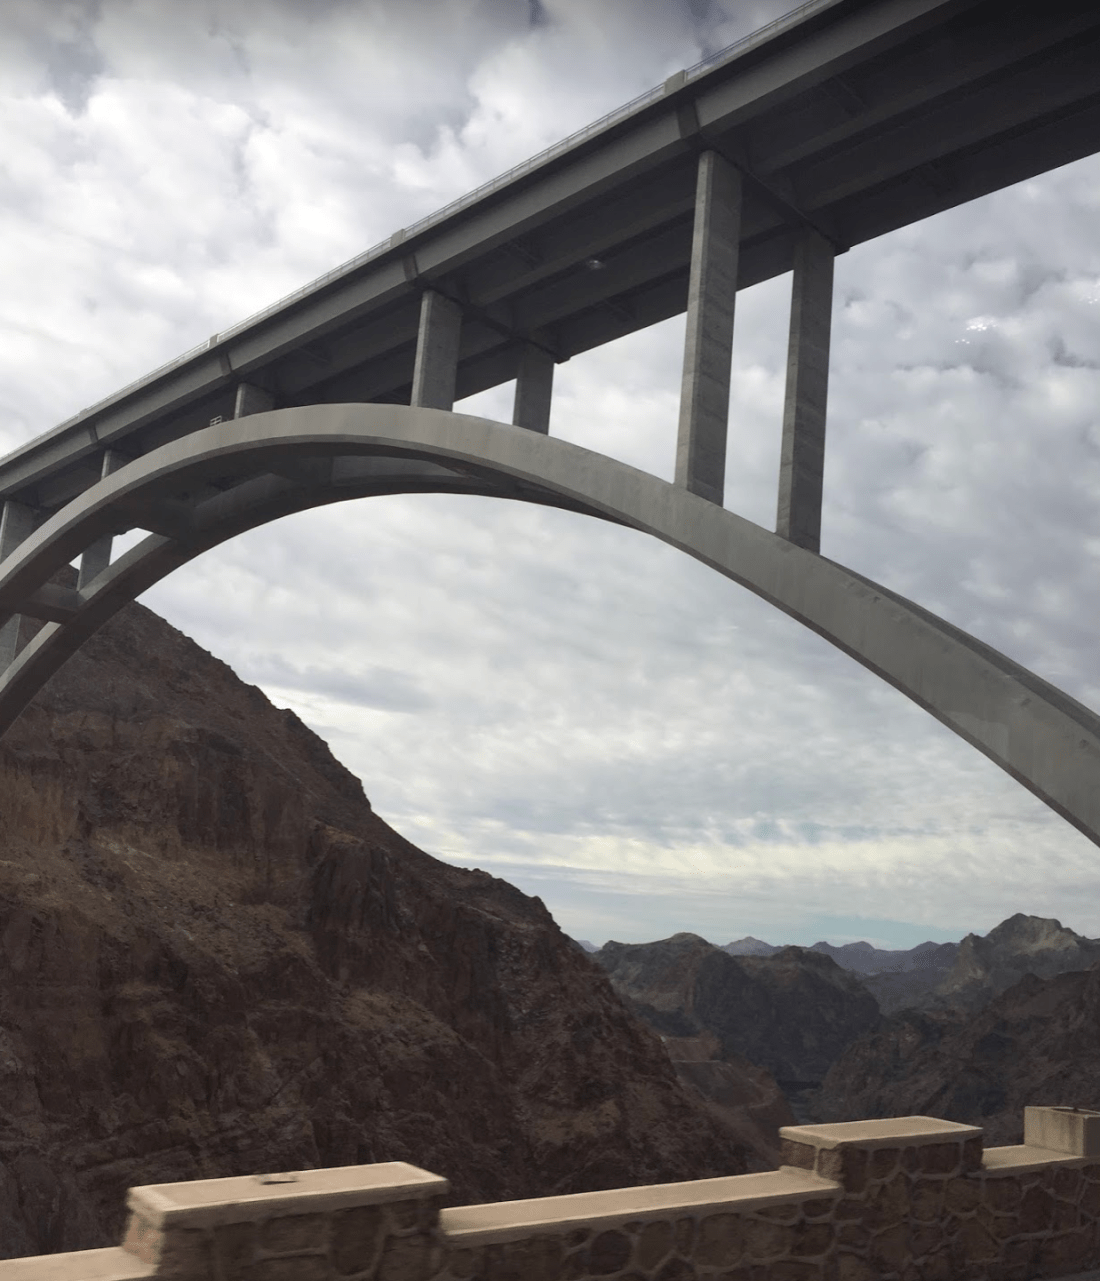 Mike O'Callaghan–Pat Tillman Memorial Bridge, Hoover Dam Bypass